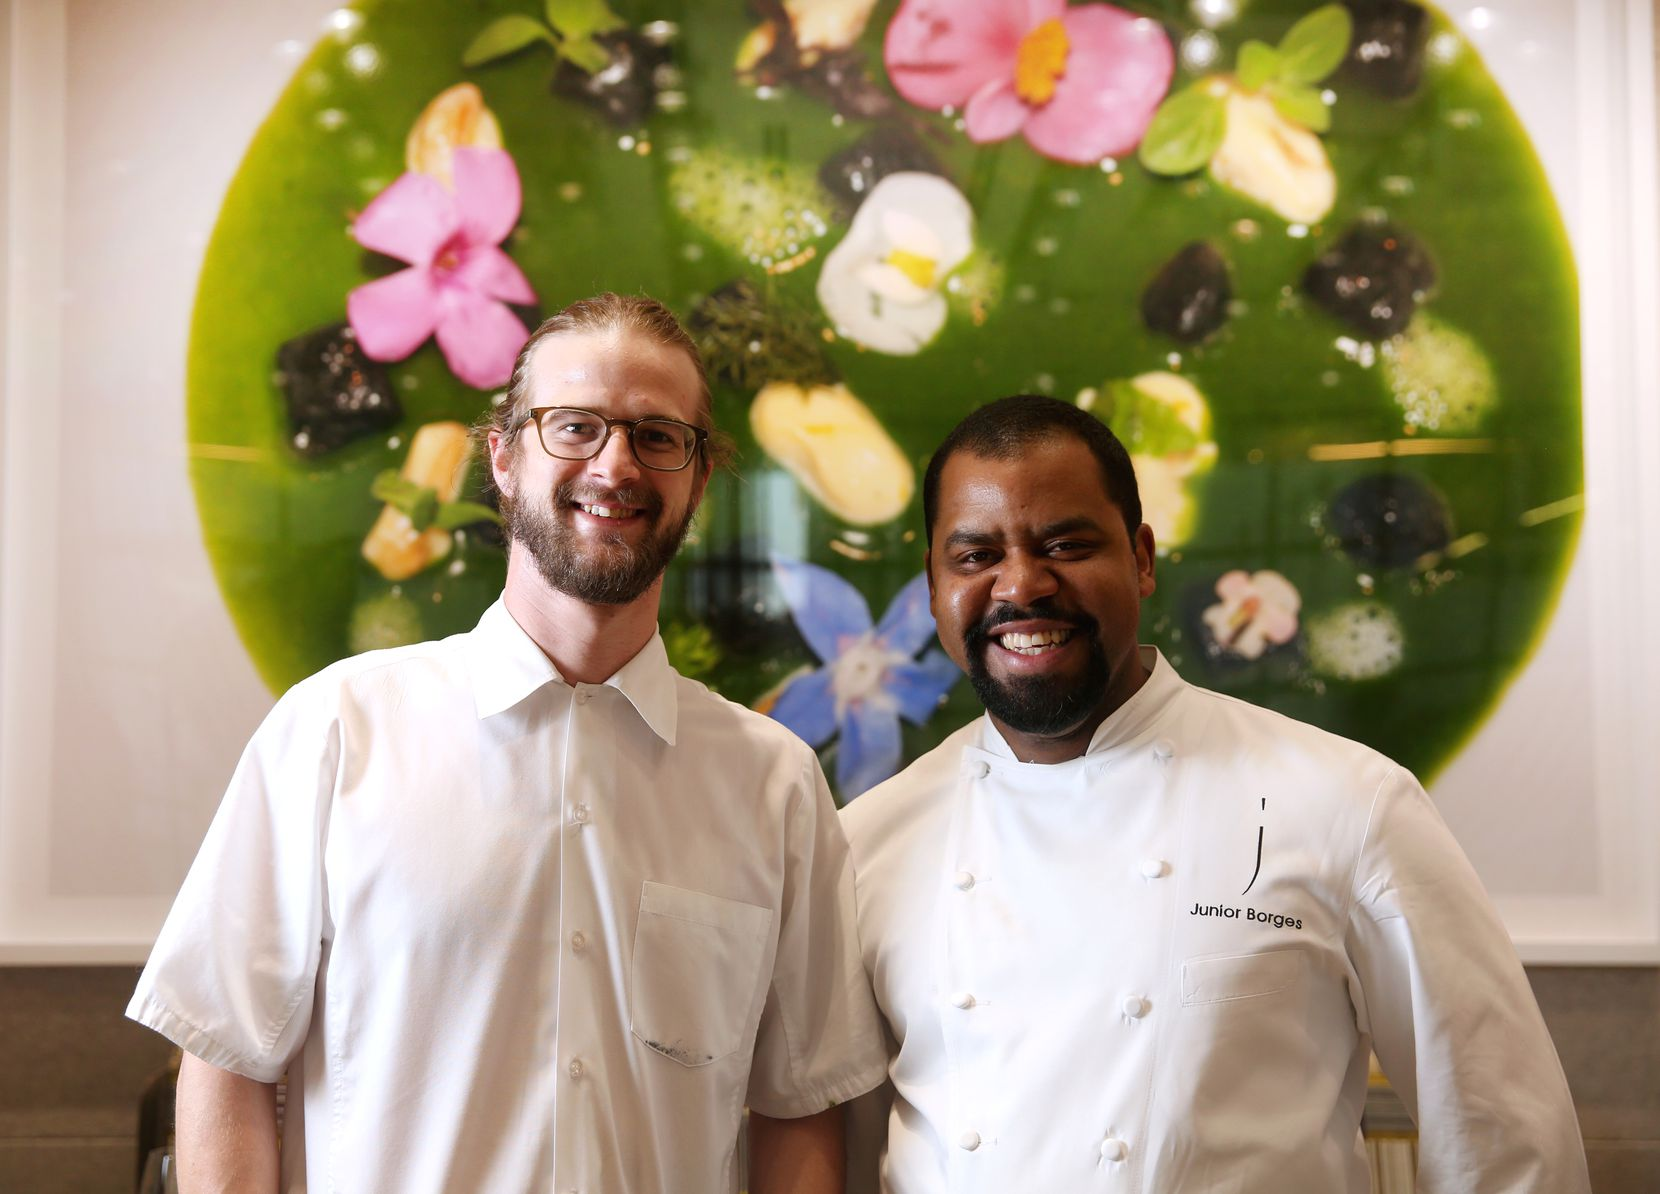 Mirador, the penthouse restaurant atop Forty Five Ten, features the cooking of executive chefs Josh Sutcliff (left) and Junior Borges.